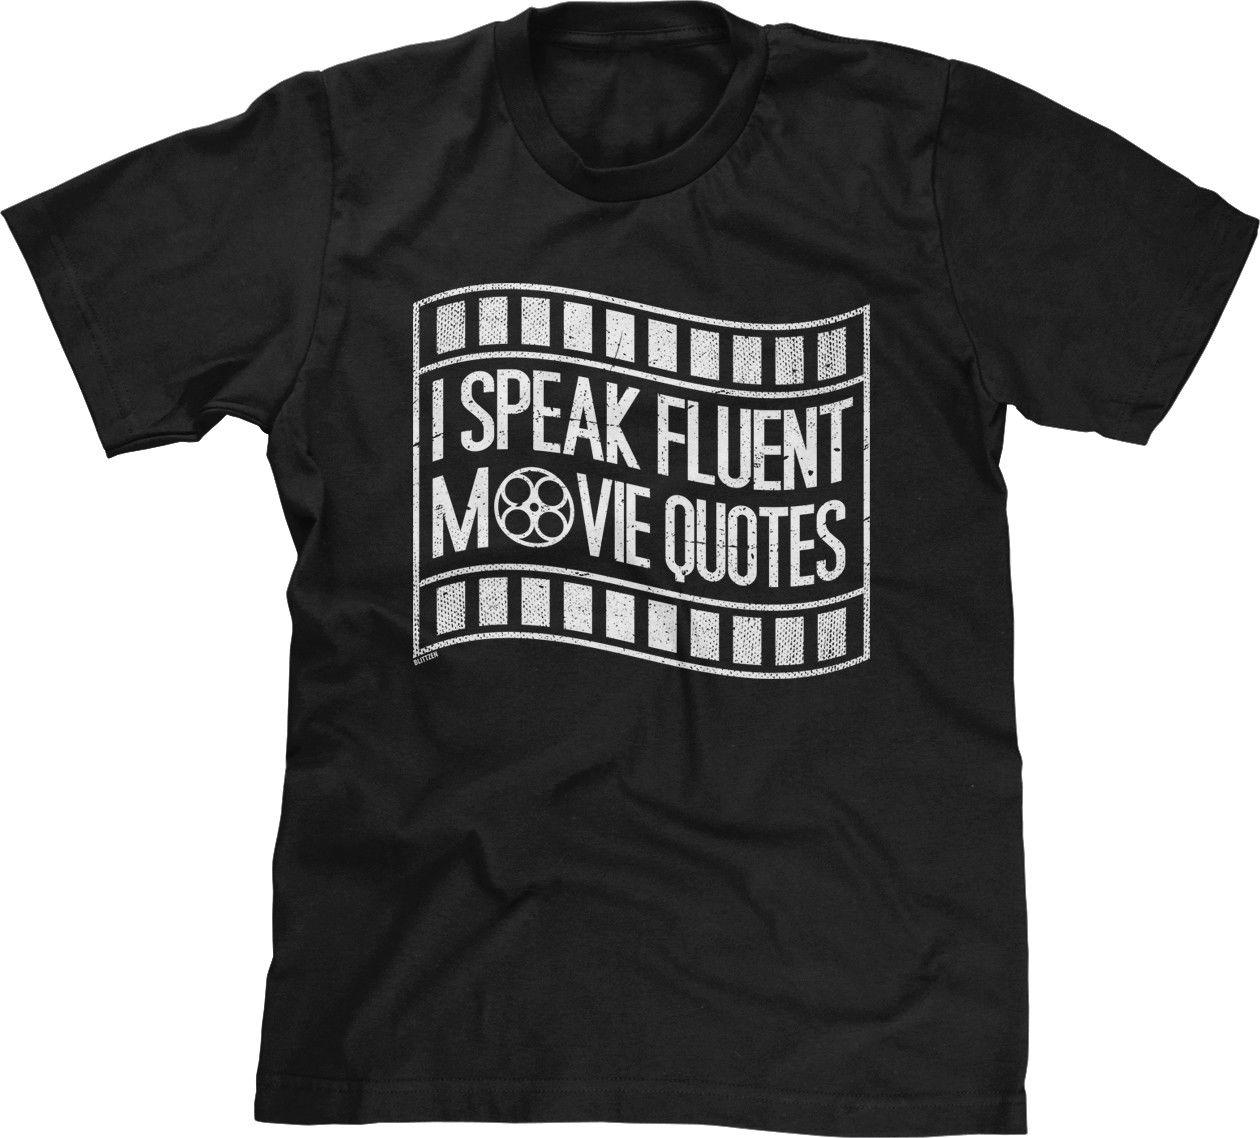 I Speak Fluent Movie Quotes Funny Humor Joke Saying Statement Slogan Mens  Tee Personality 2018 Brand T Shirt Top Tees Short Sleeve